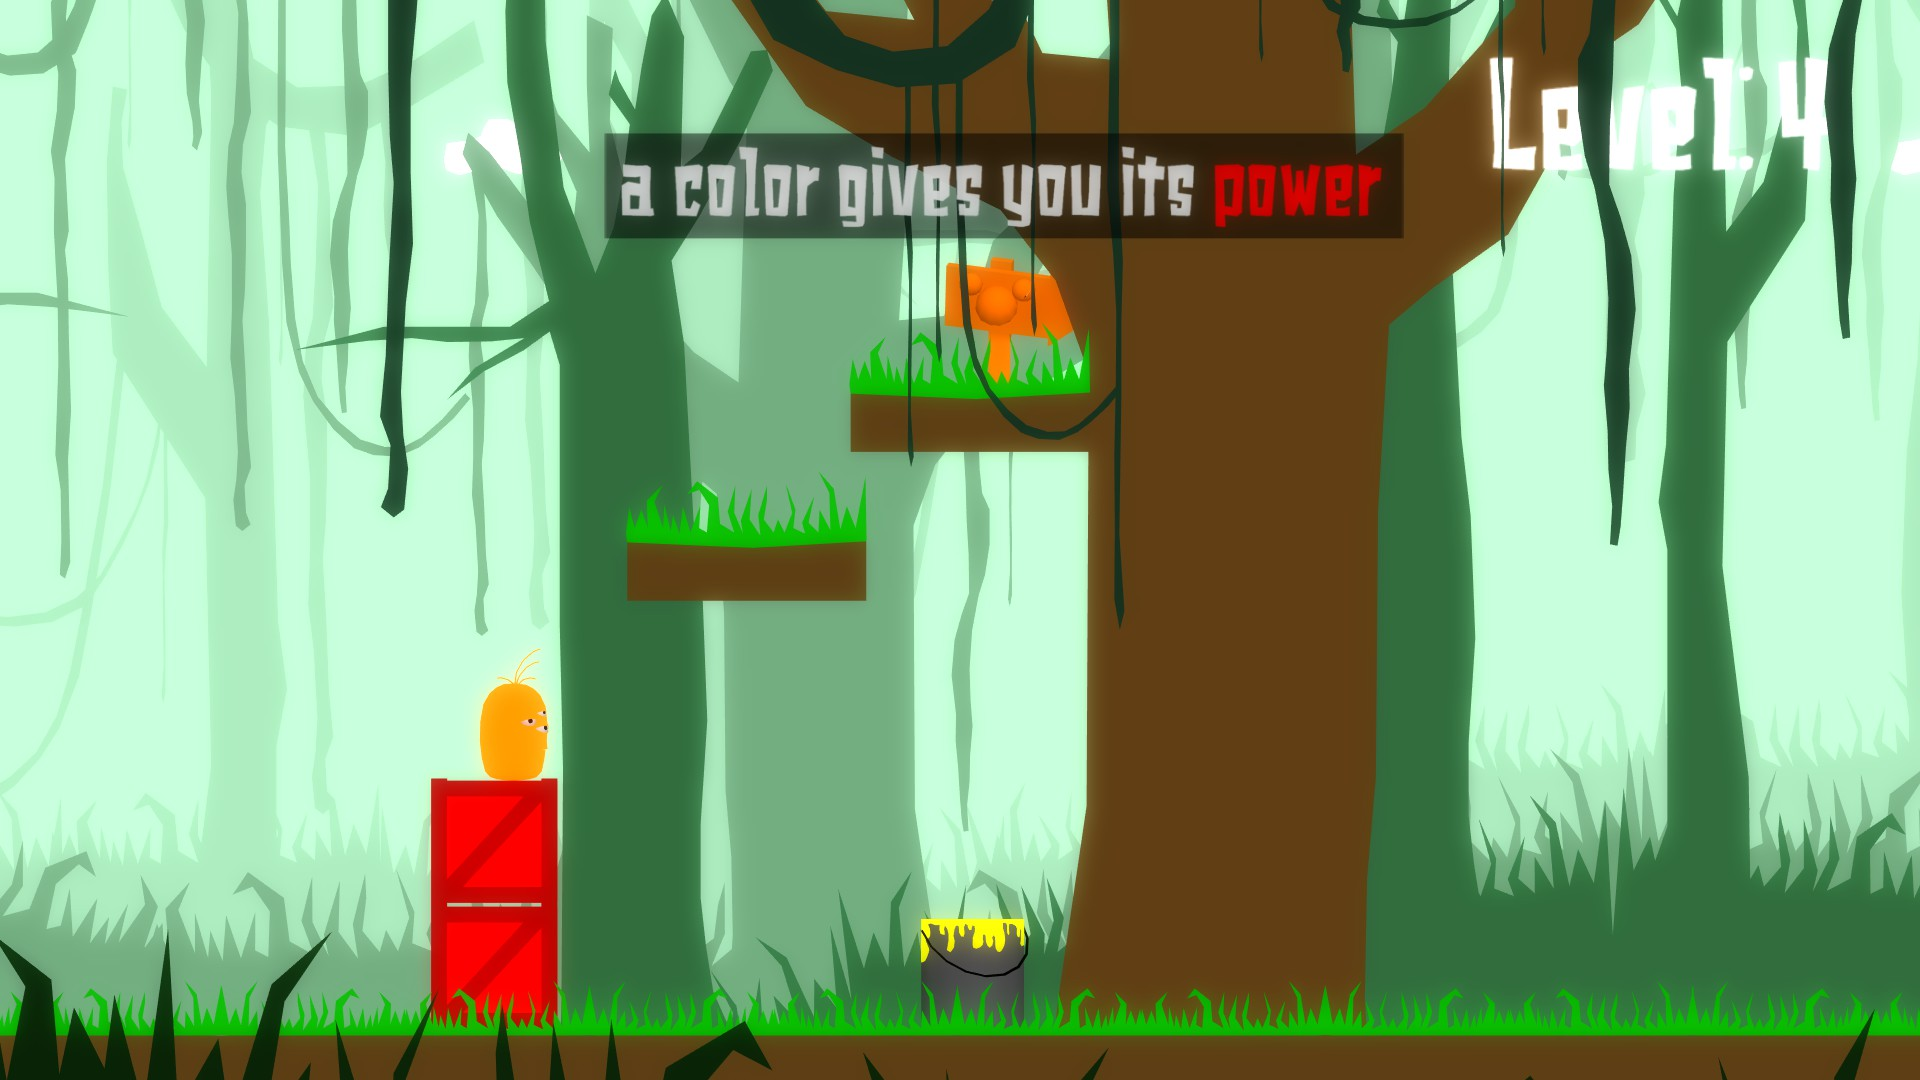 Coated level 4, orange main character standing on red boxes. an orange goal and yellow paint are nearby. Tutorial text reads: